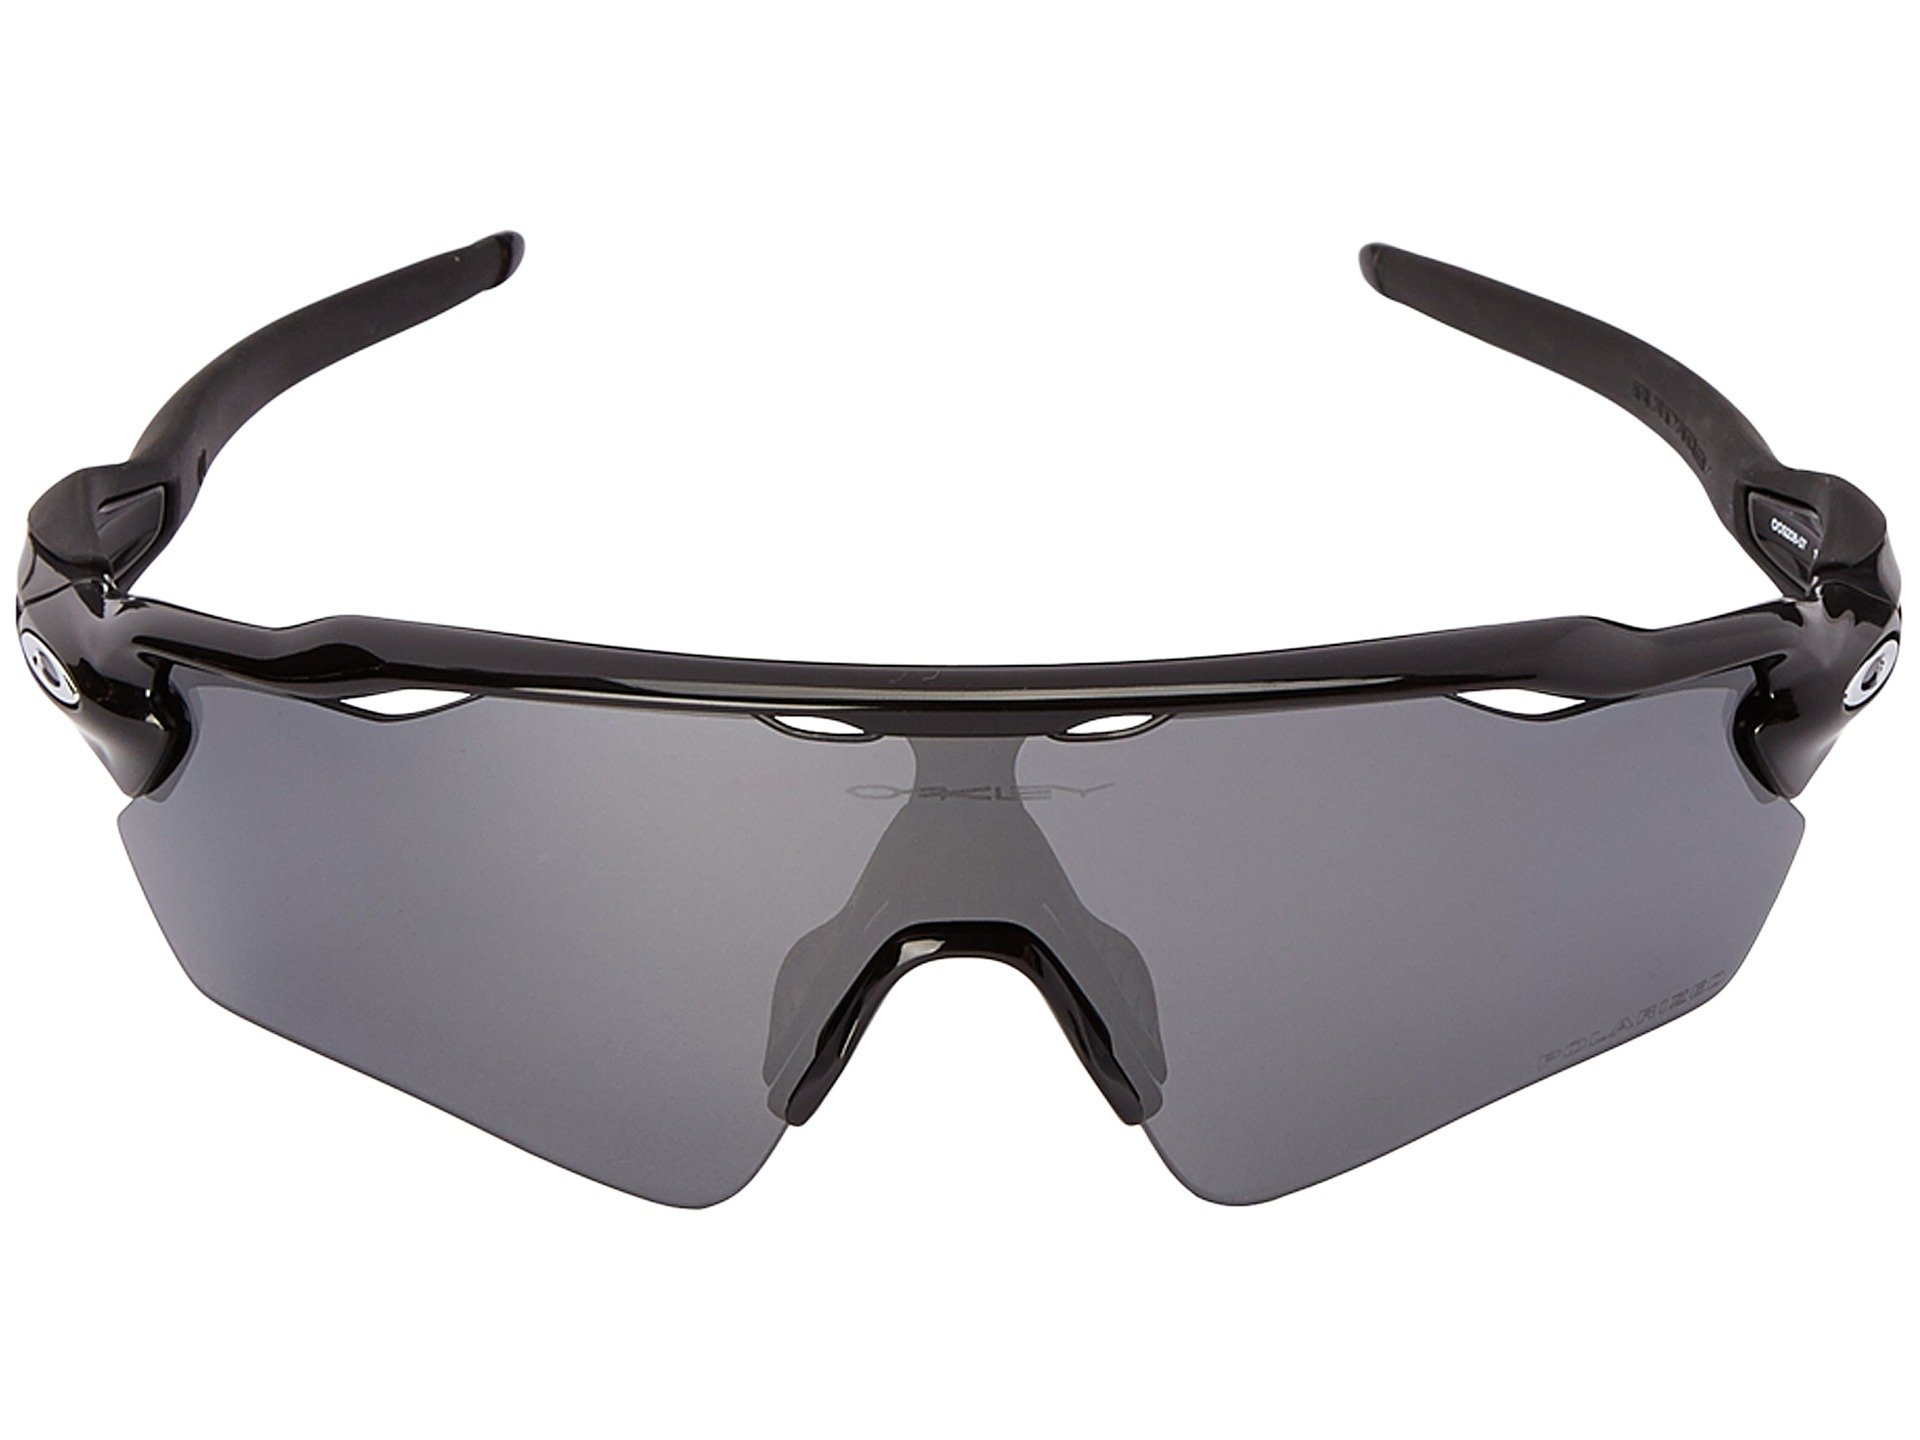 Oakley Glasses Frame Parts : oakley sunglass parts